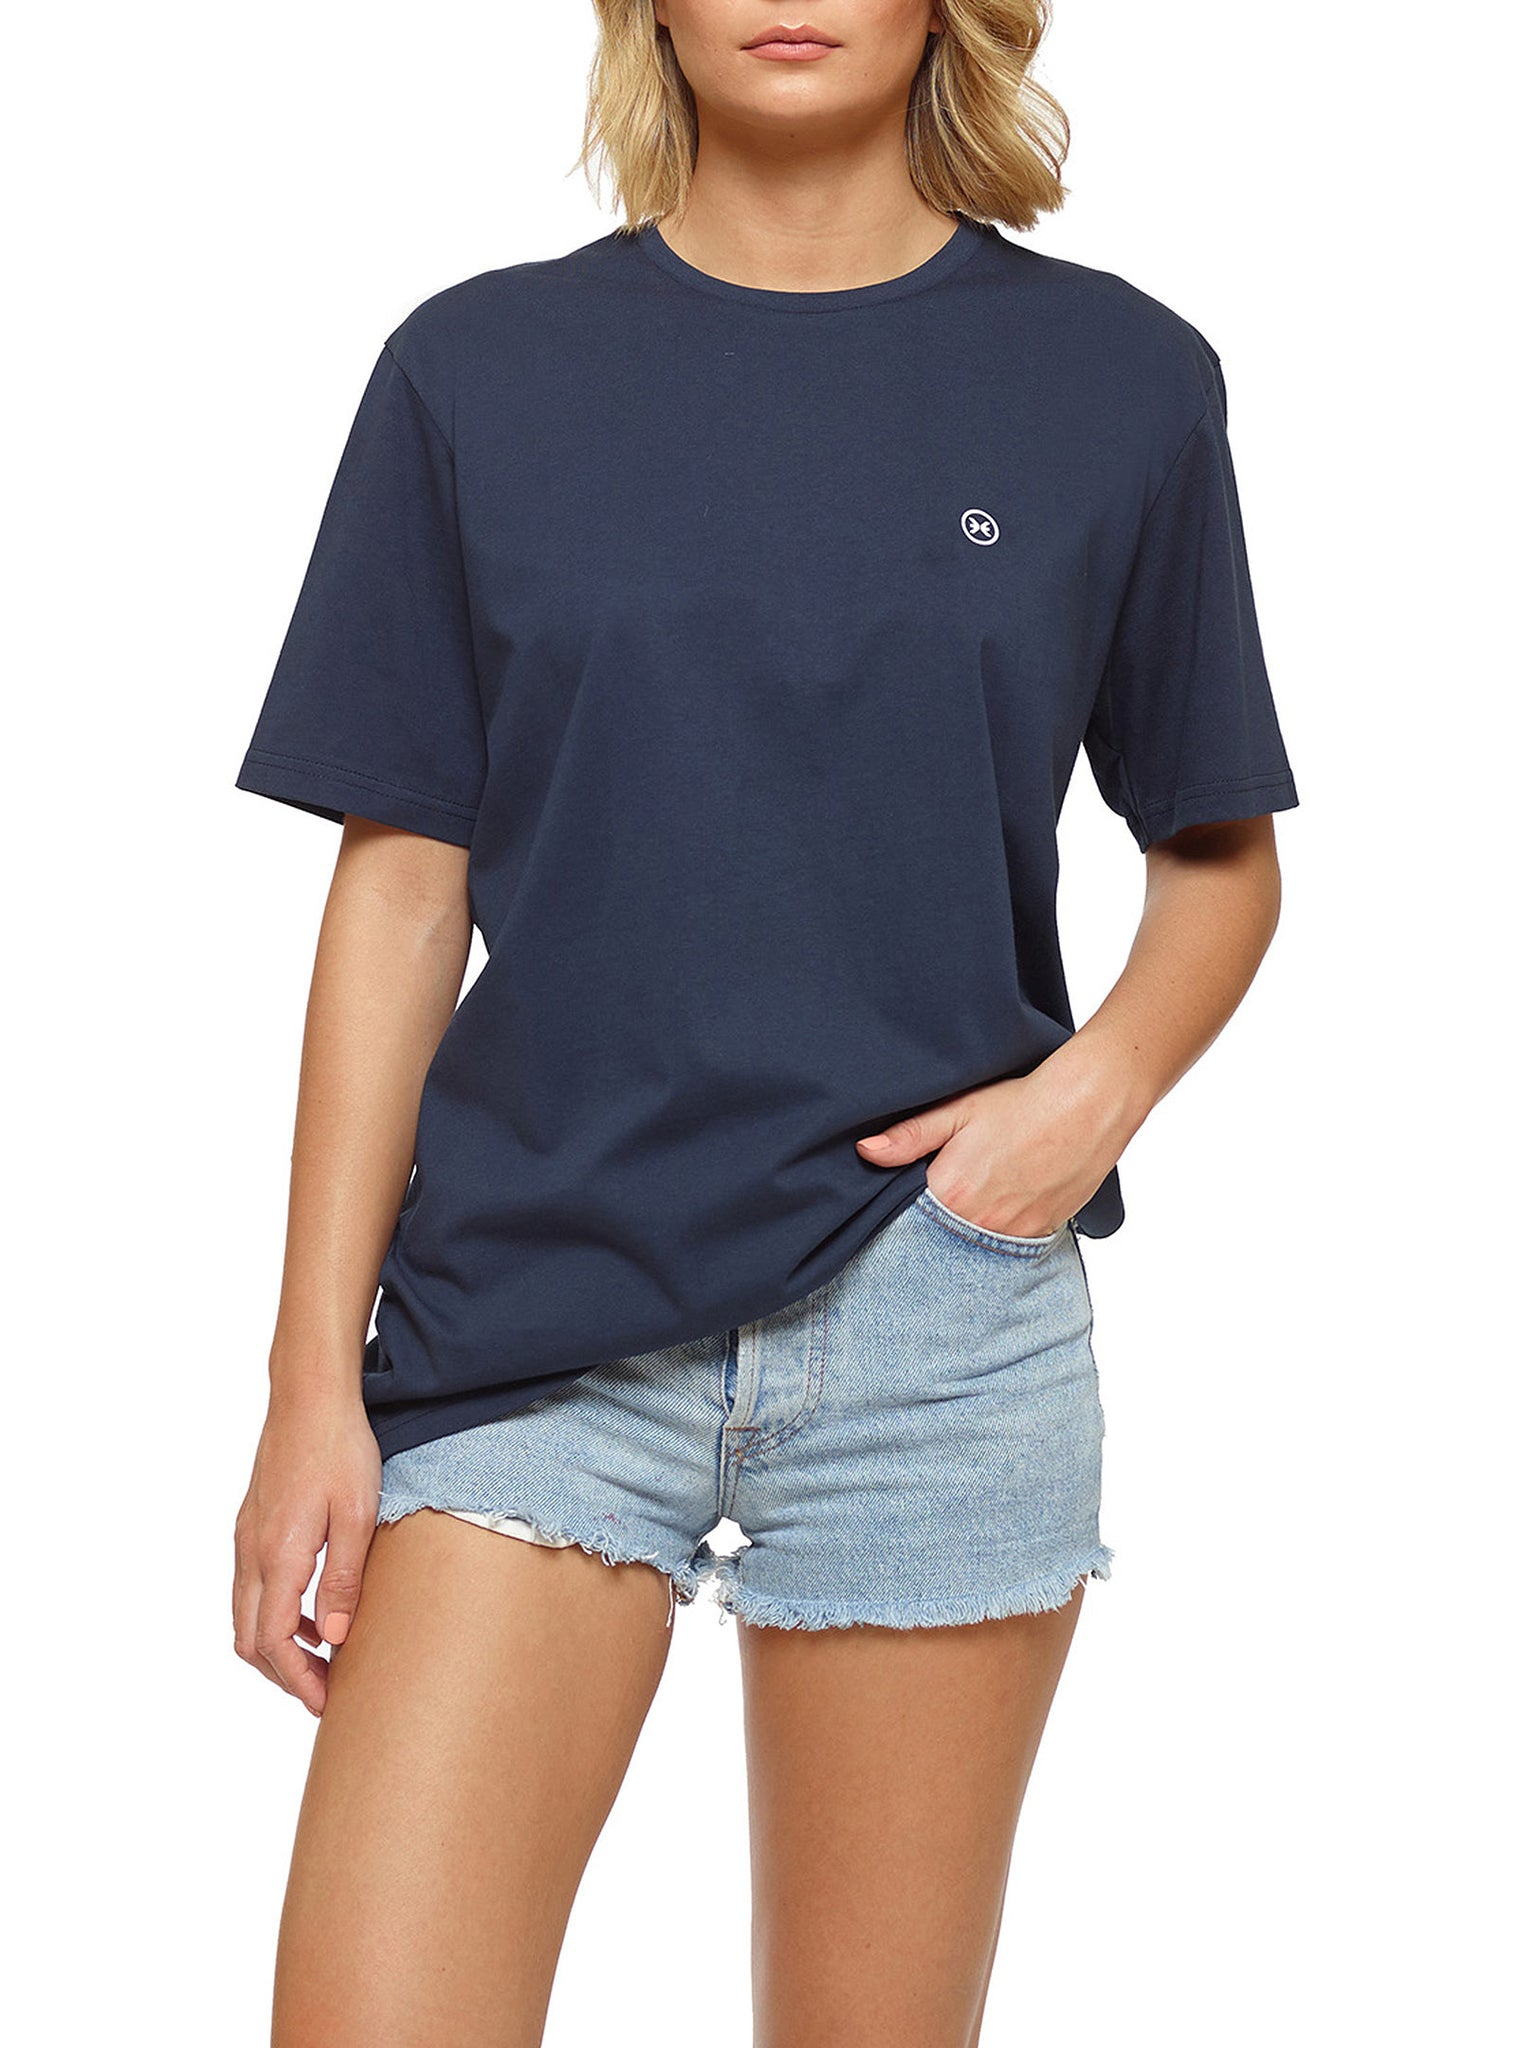 Embroidery T-shirt Manches Courtes Bleu Marine